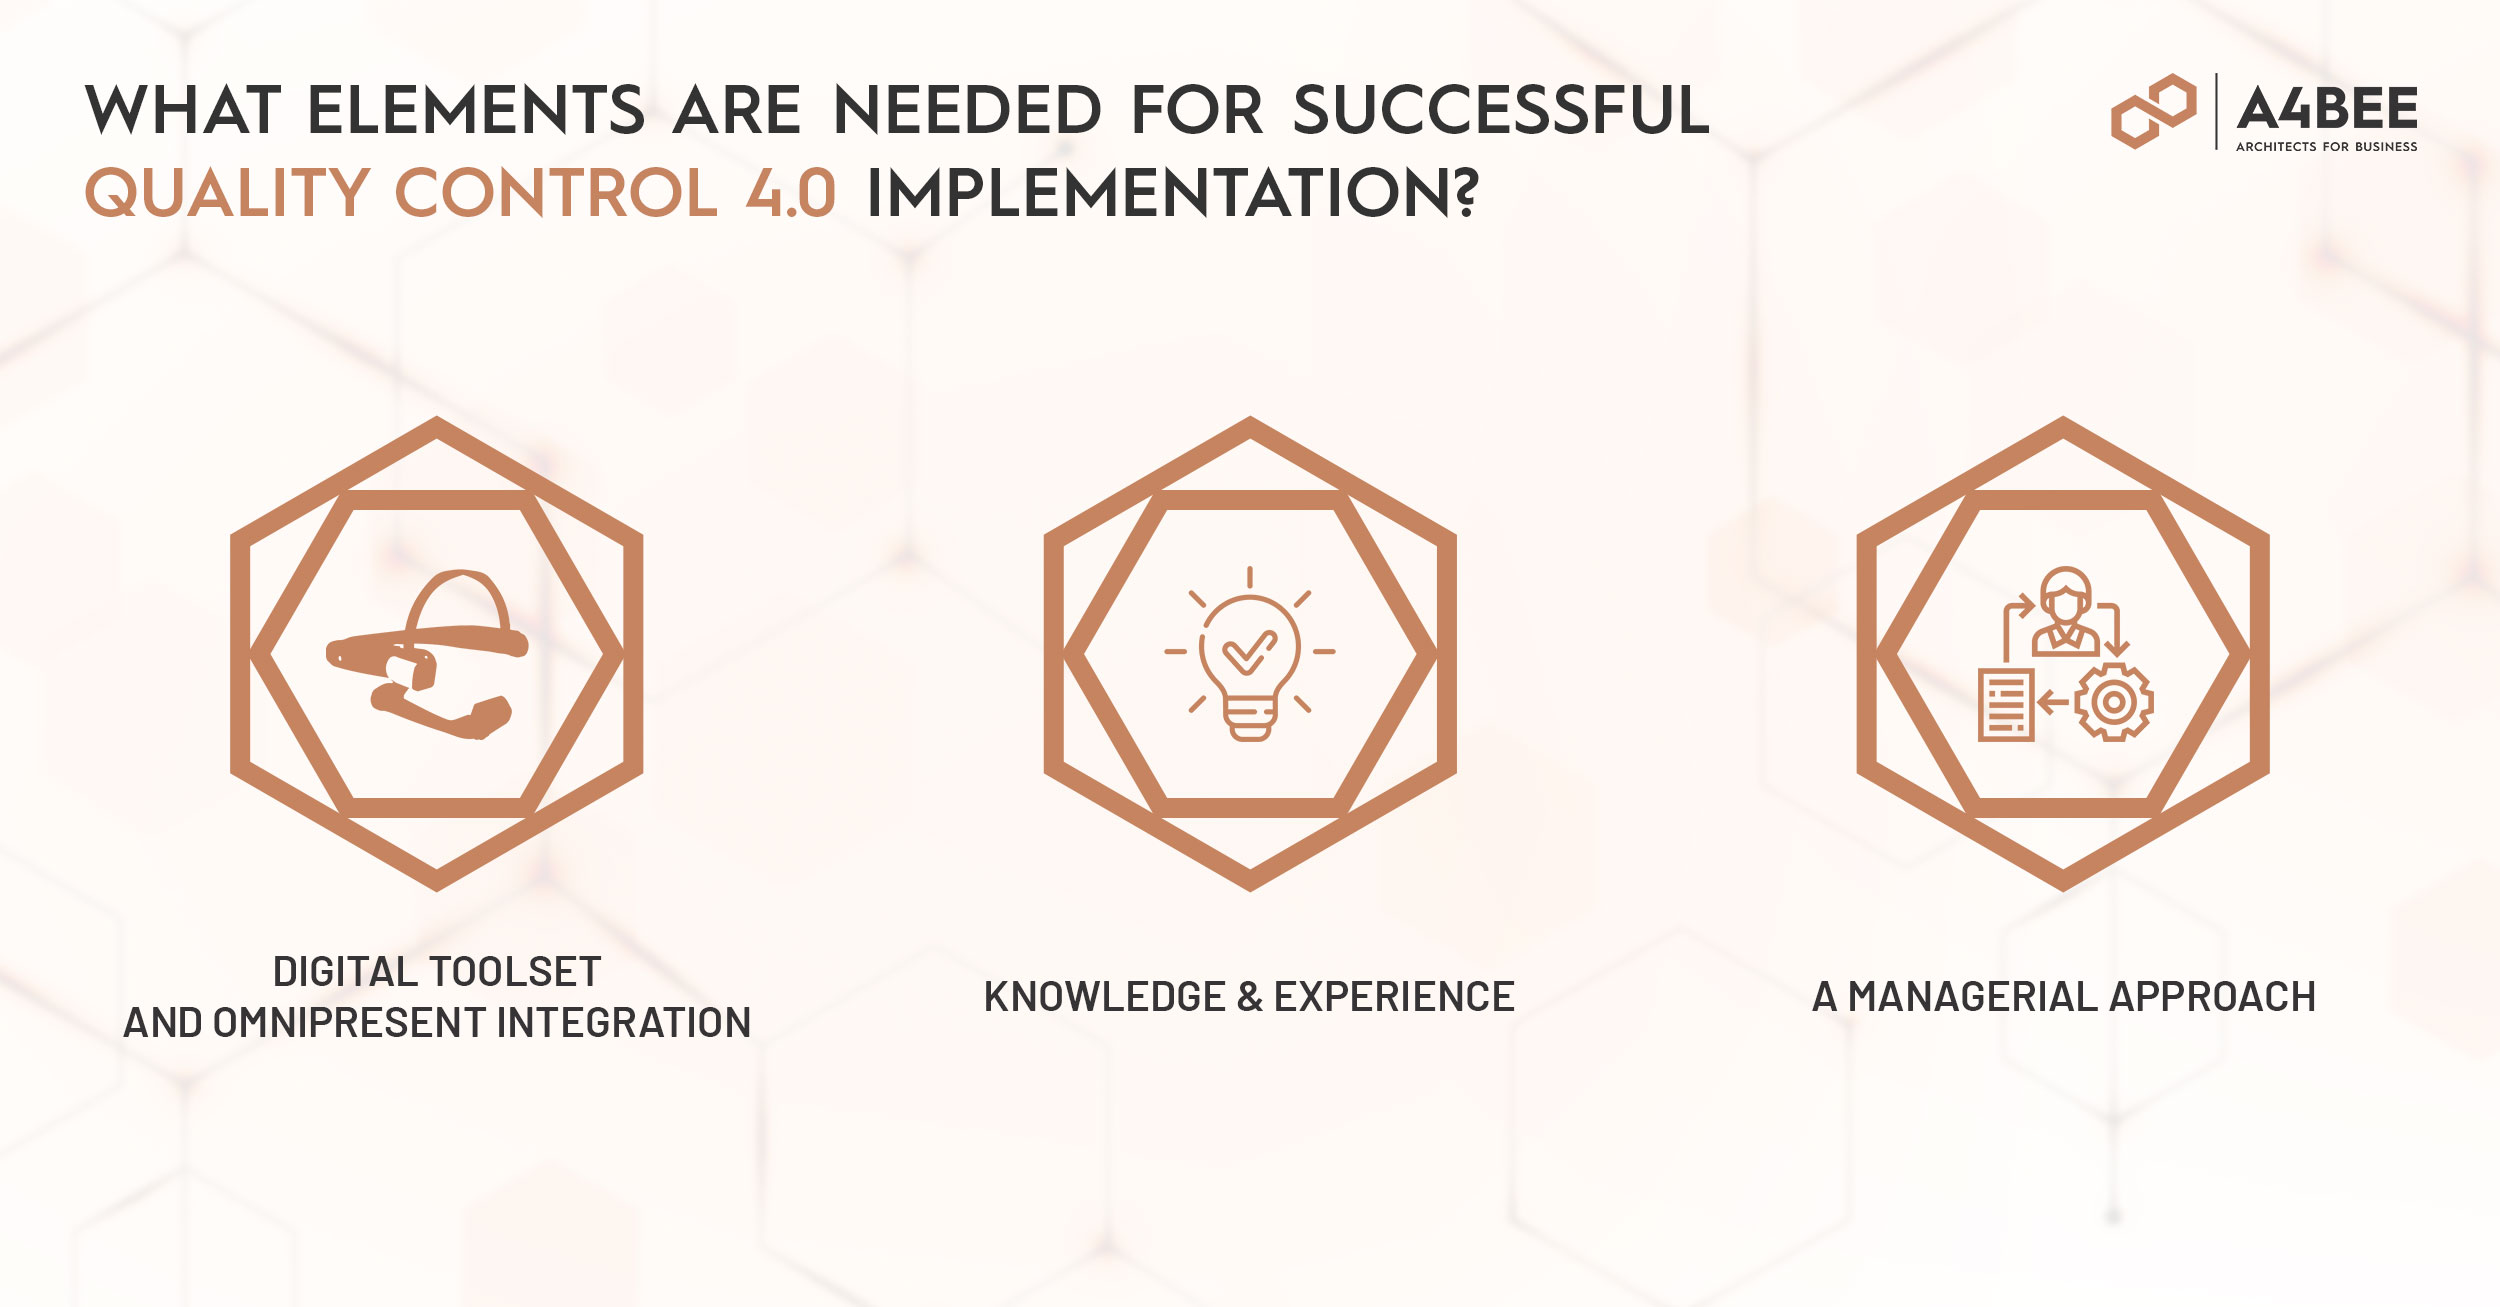 three elements are needed for successful Quality Control 4.0 implementation